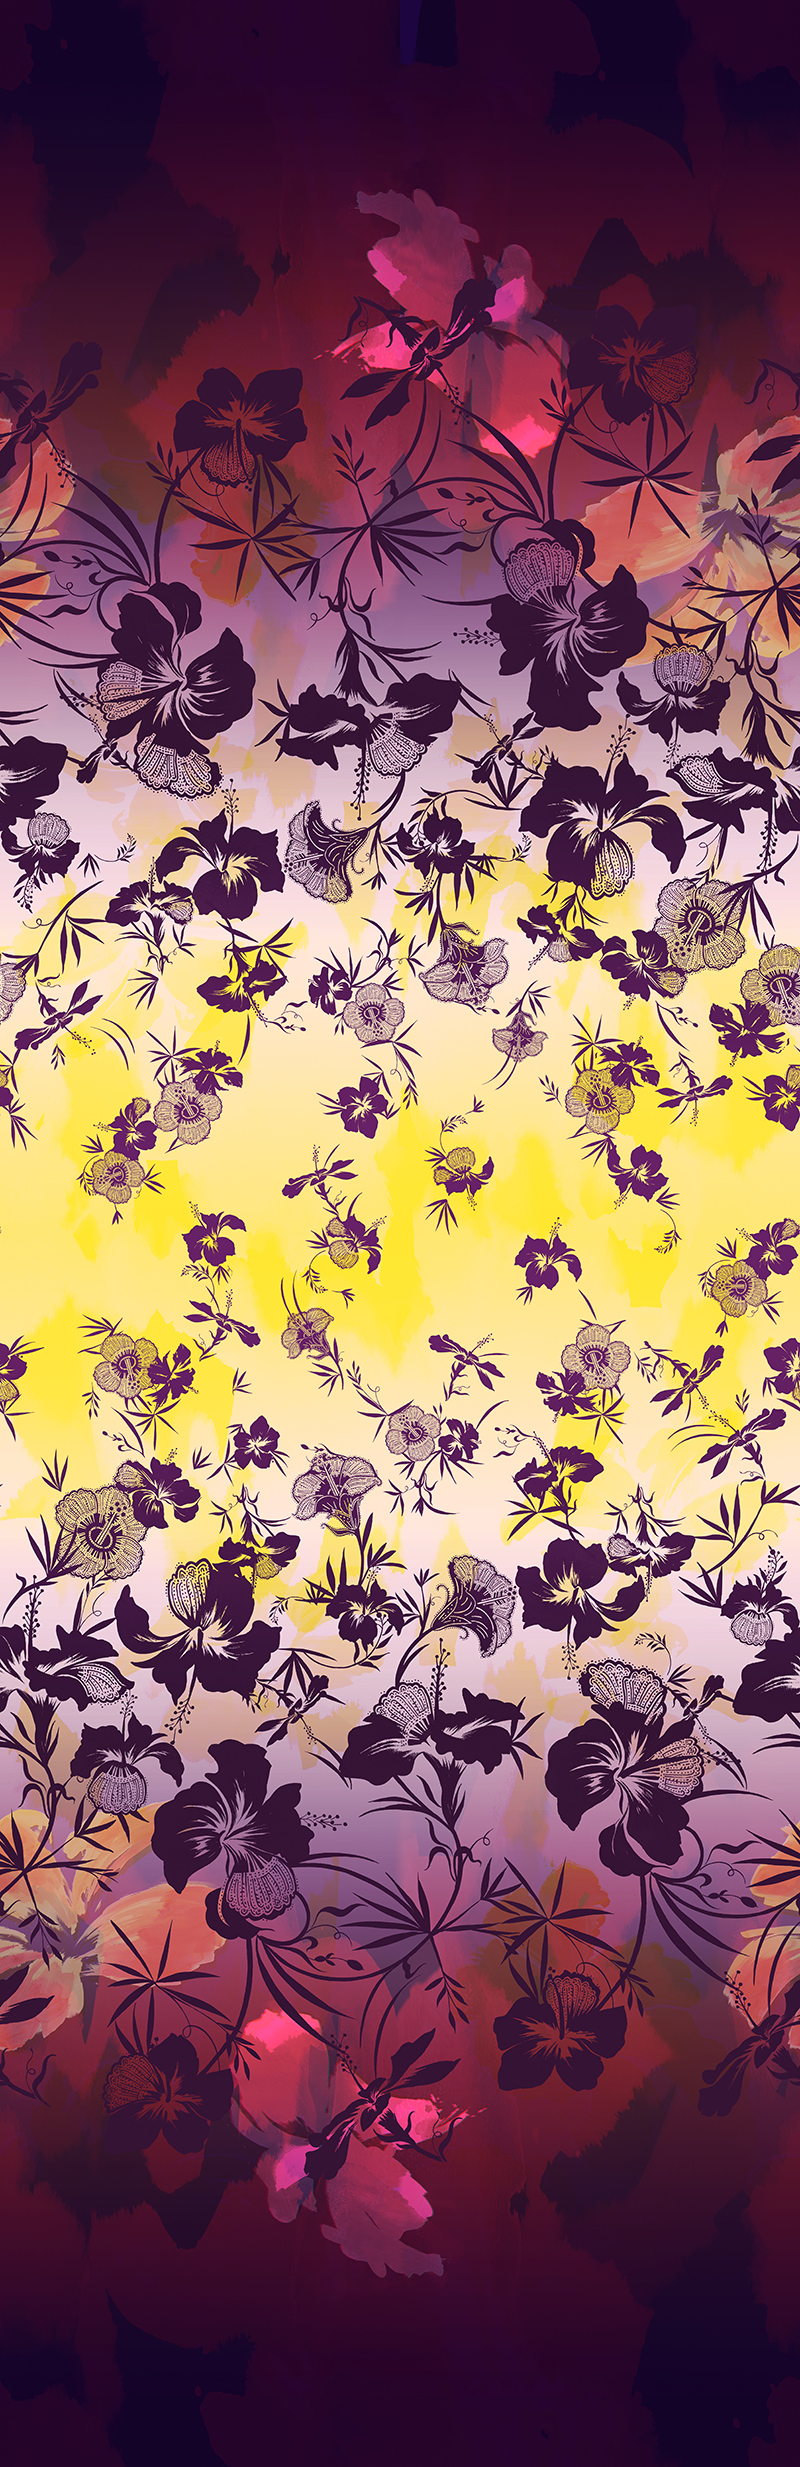 The Matthew Williamson Hibiscus Flower Print for SS15 in citrus and damson